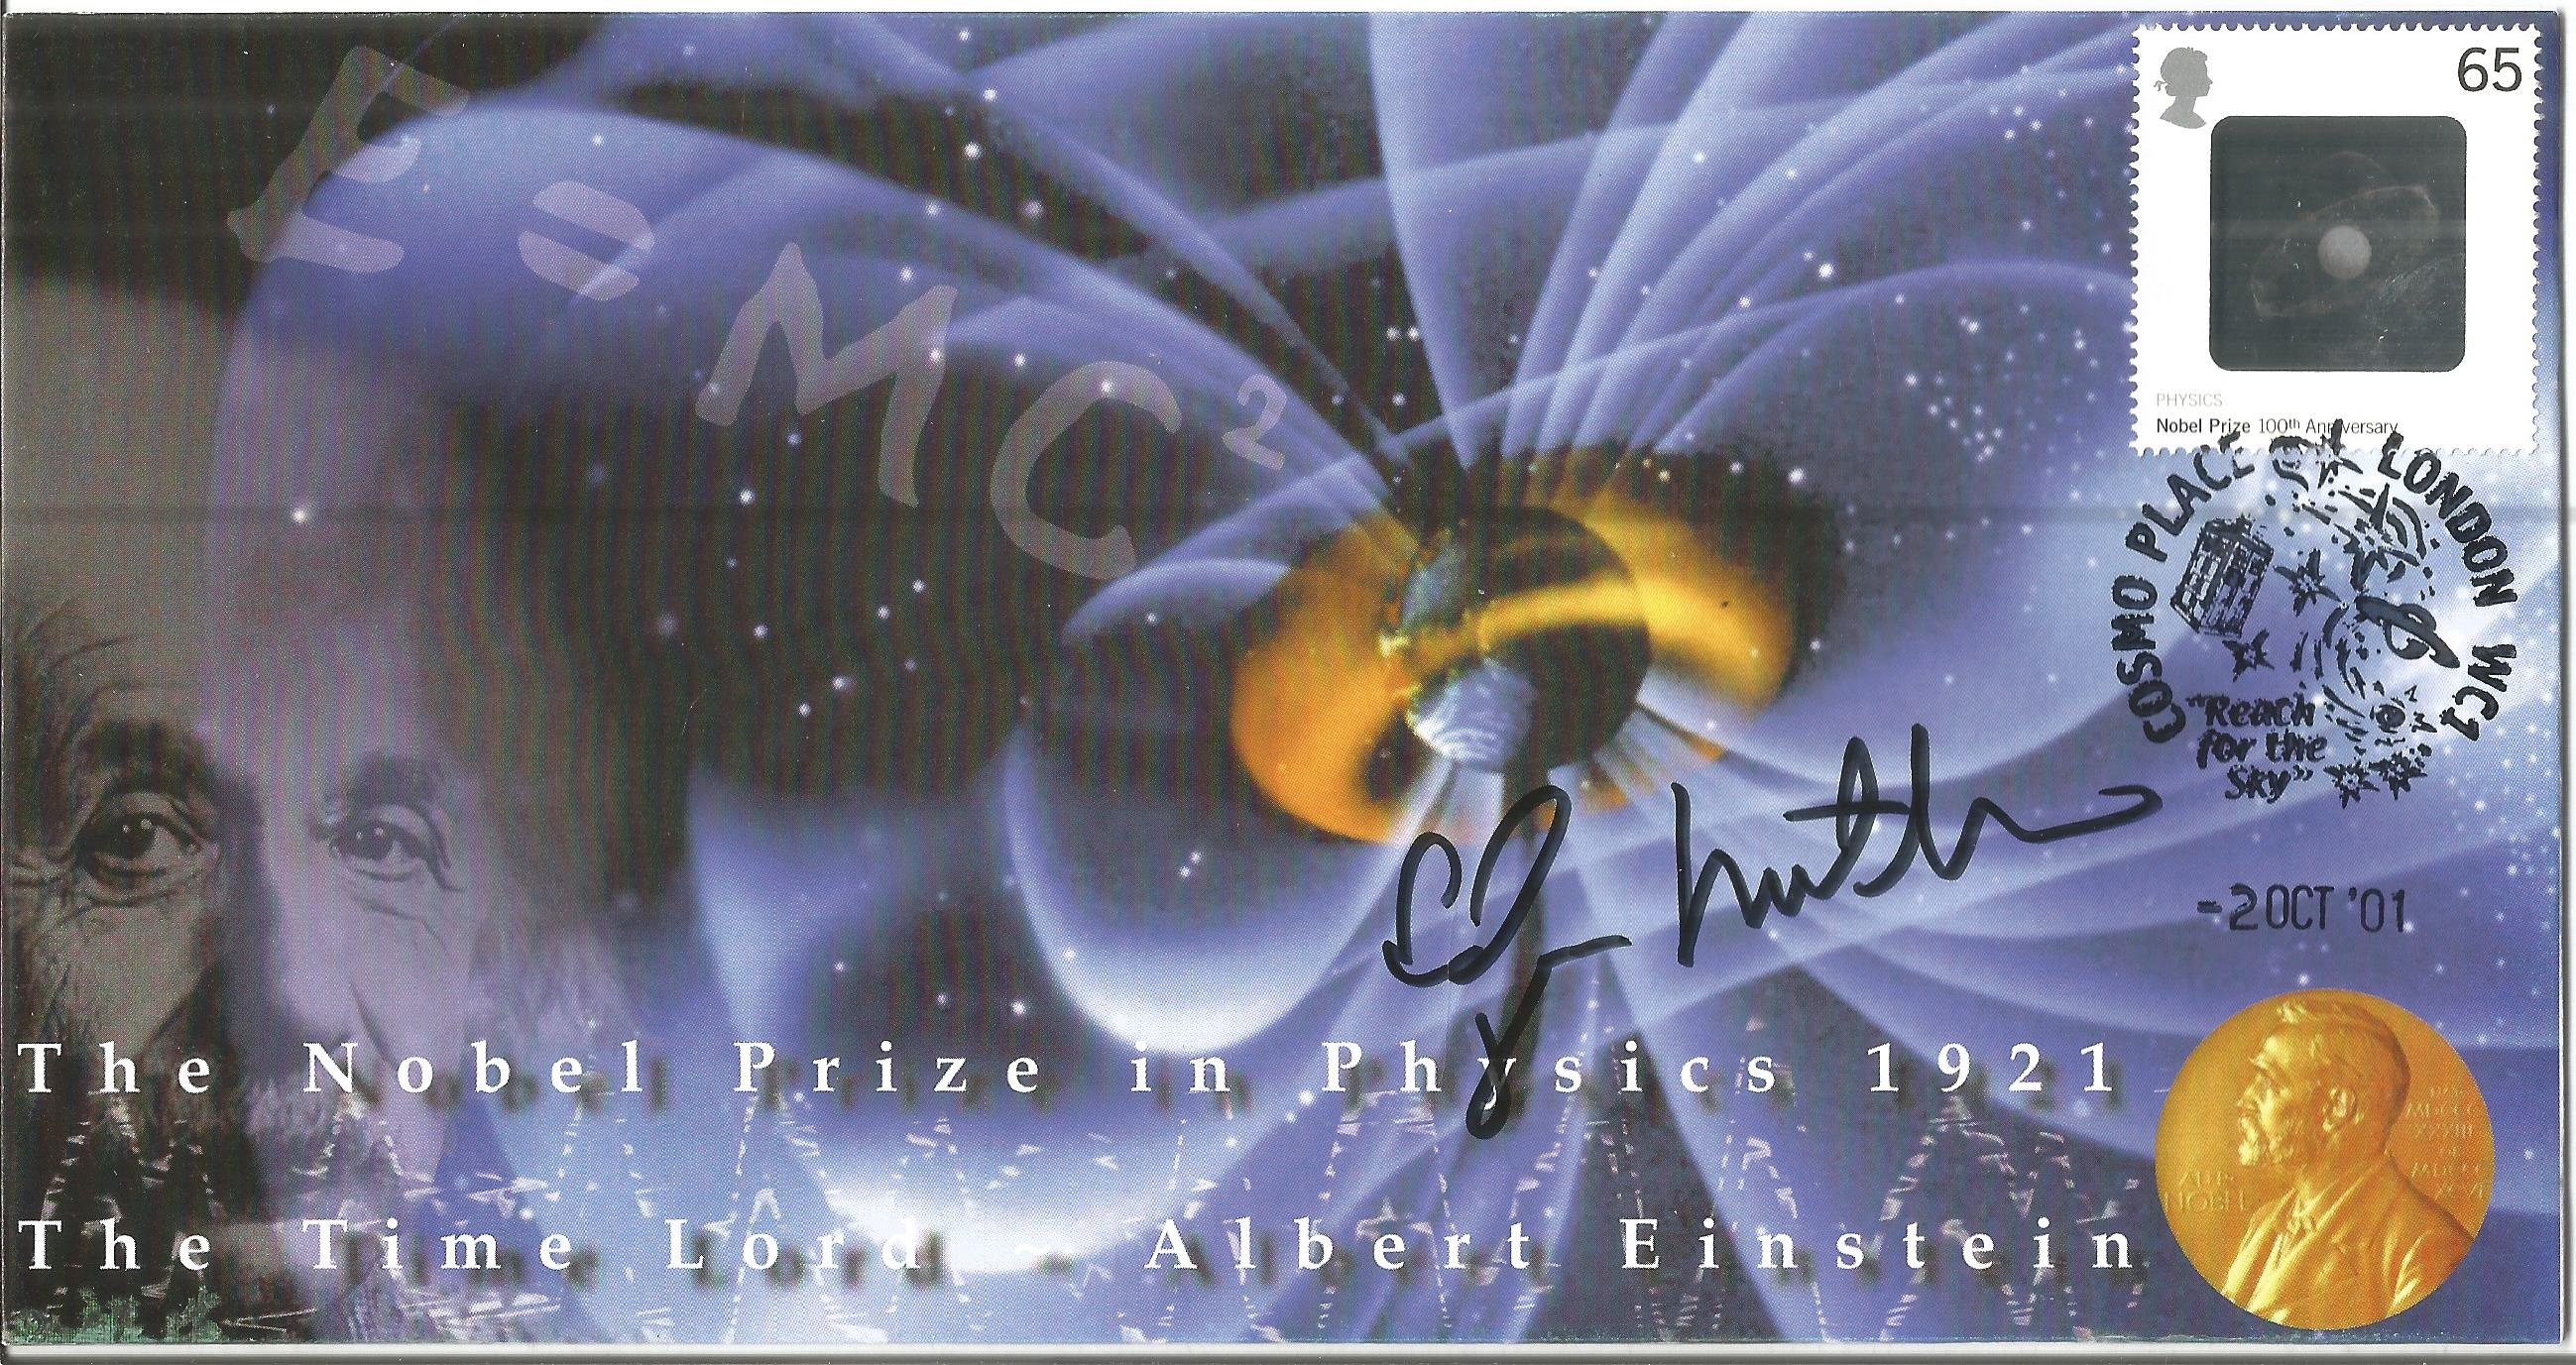 Space Moonwalker Dr Edgar Mitchell NASA Astronaut signed 2001 Physics Nobel Prize Limited Edition